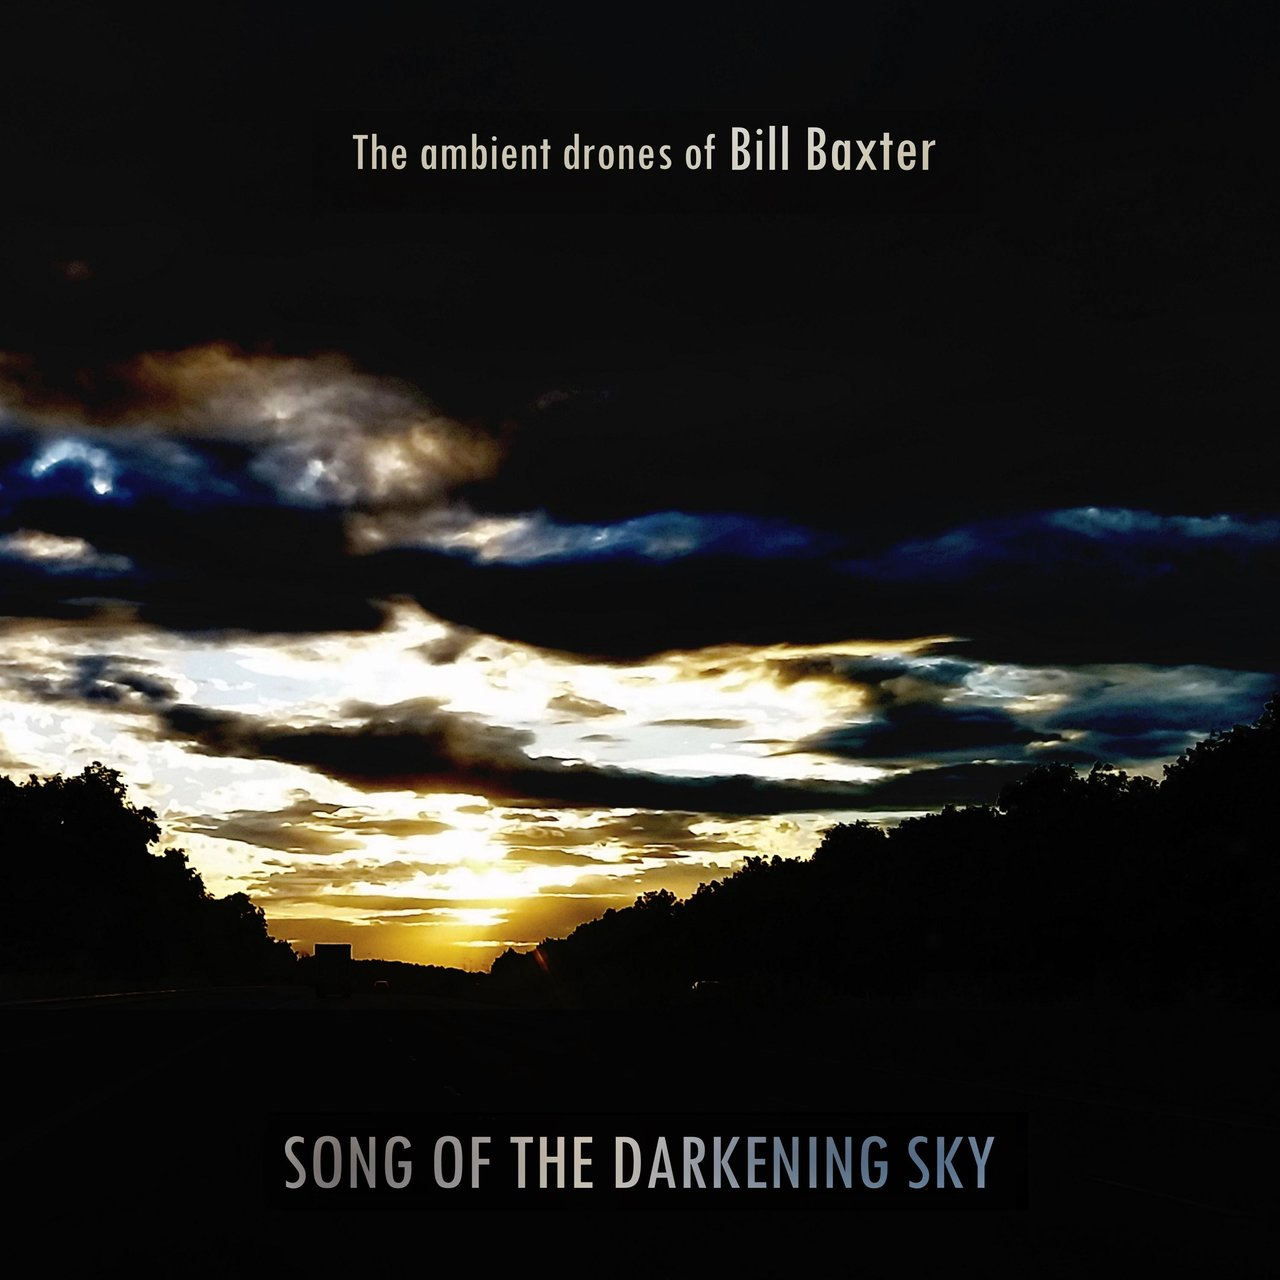 Song of the Darkening Sky